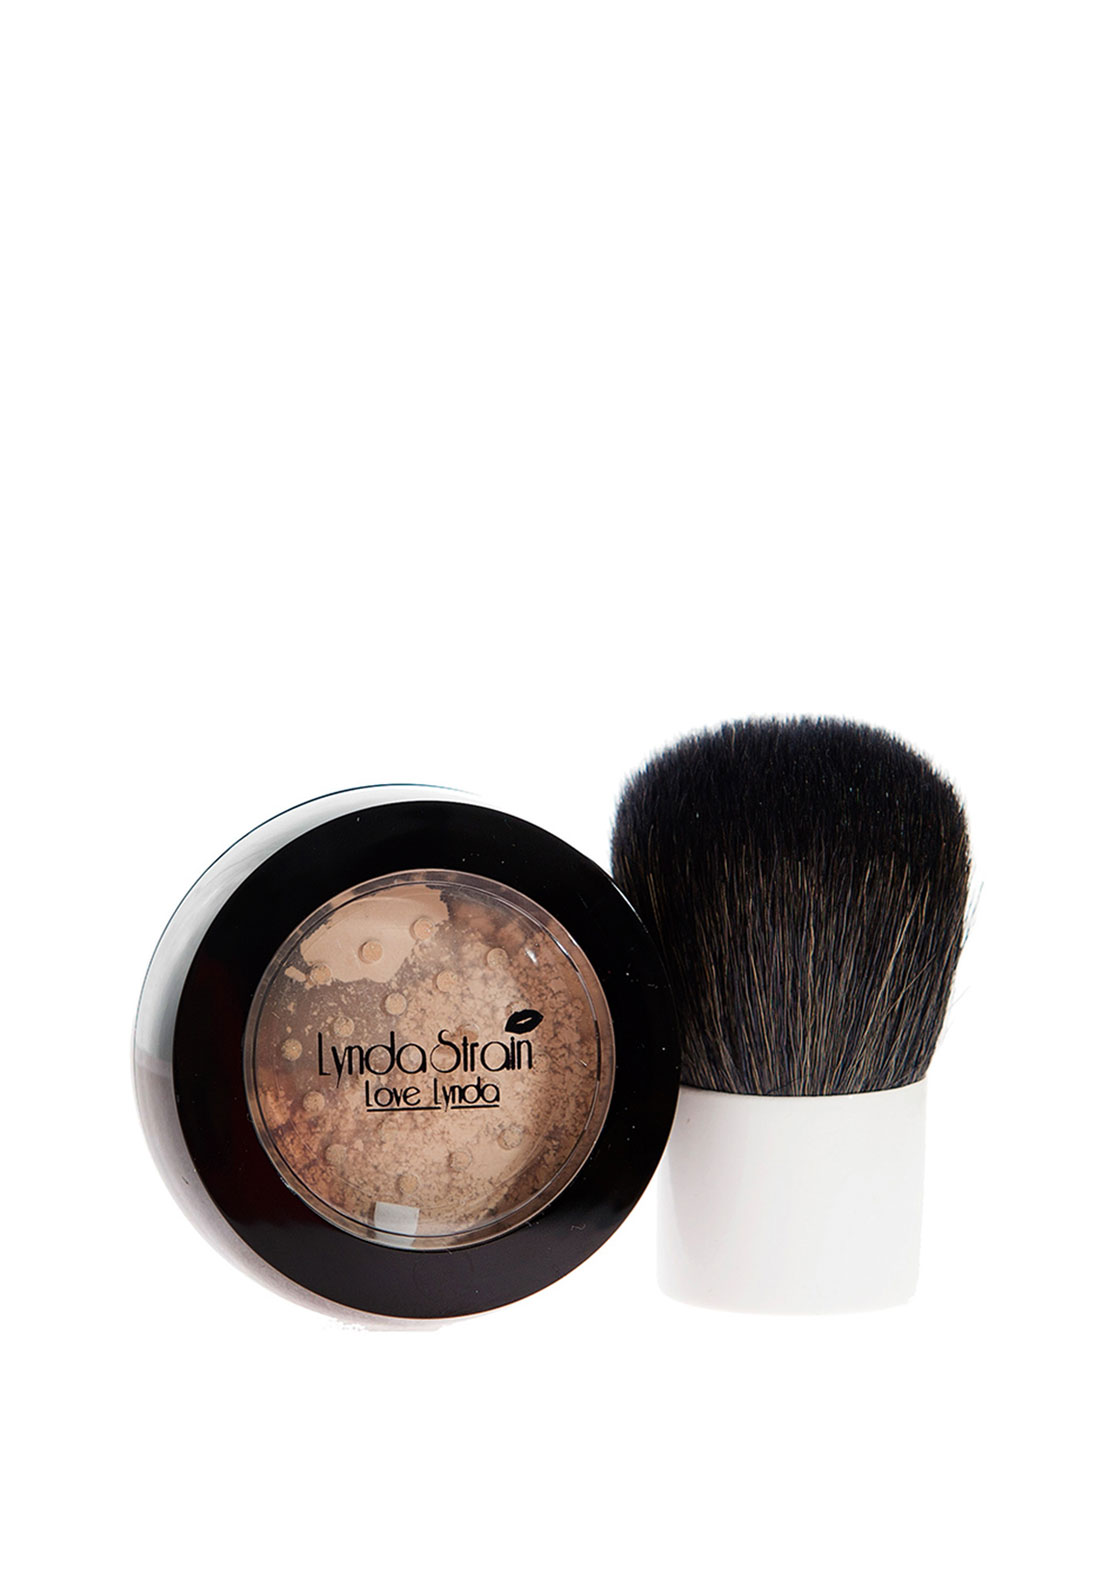 Lynda Strain Love Lynda Mineral Loose Foundation, Warm 2